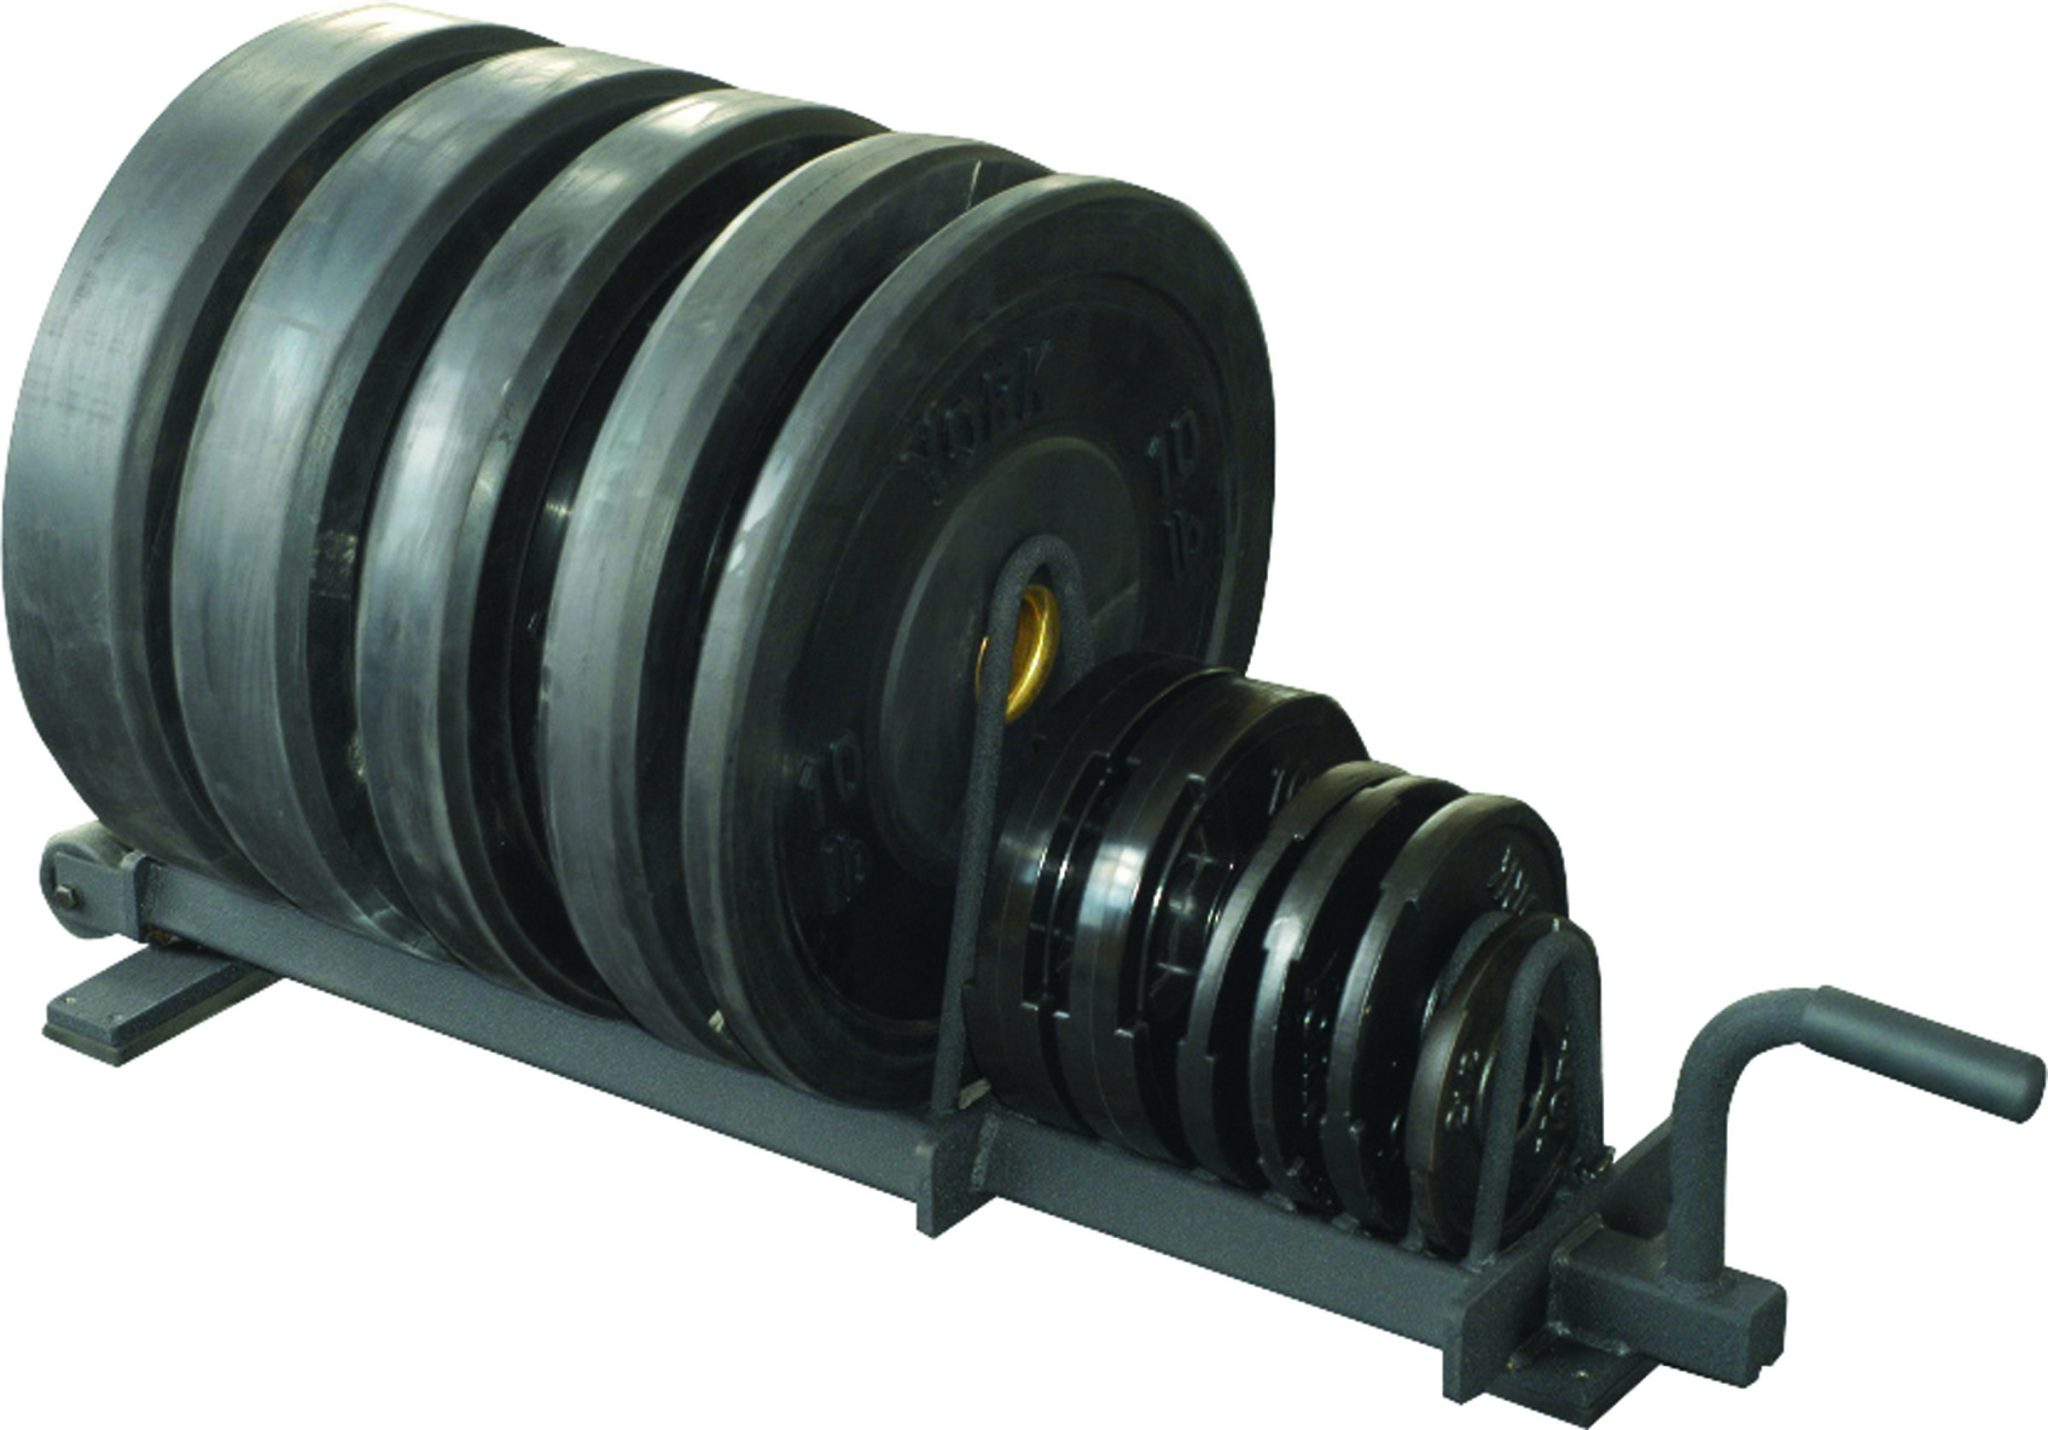 Horizontal Weight Plate Rack  sc 1 st  York Barbell & Weight Plate Storage Racks \u0026 Stands | Gym Equipment | York Barbell